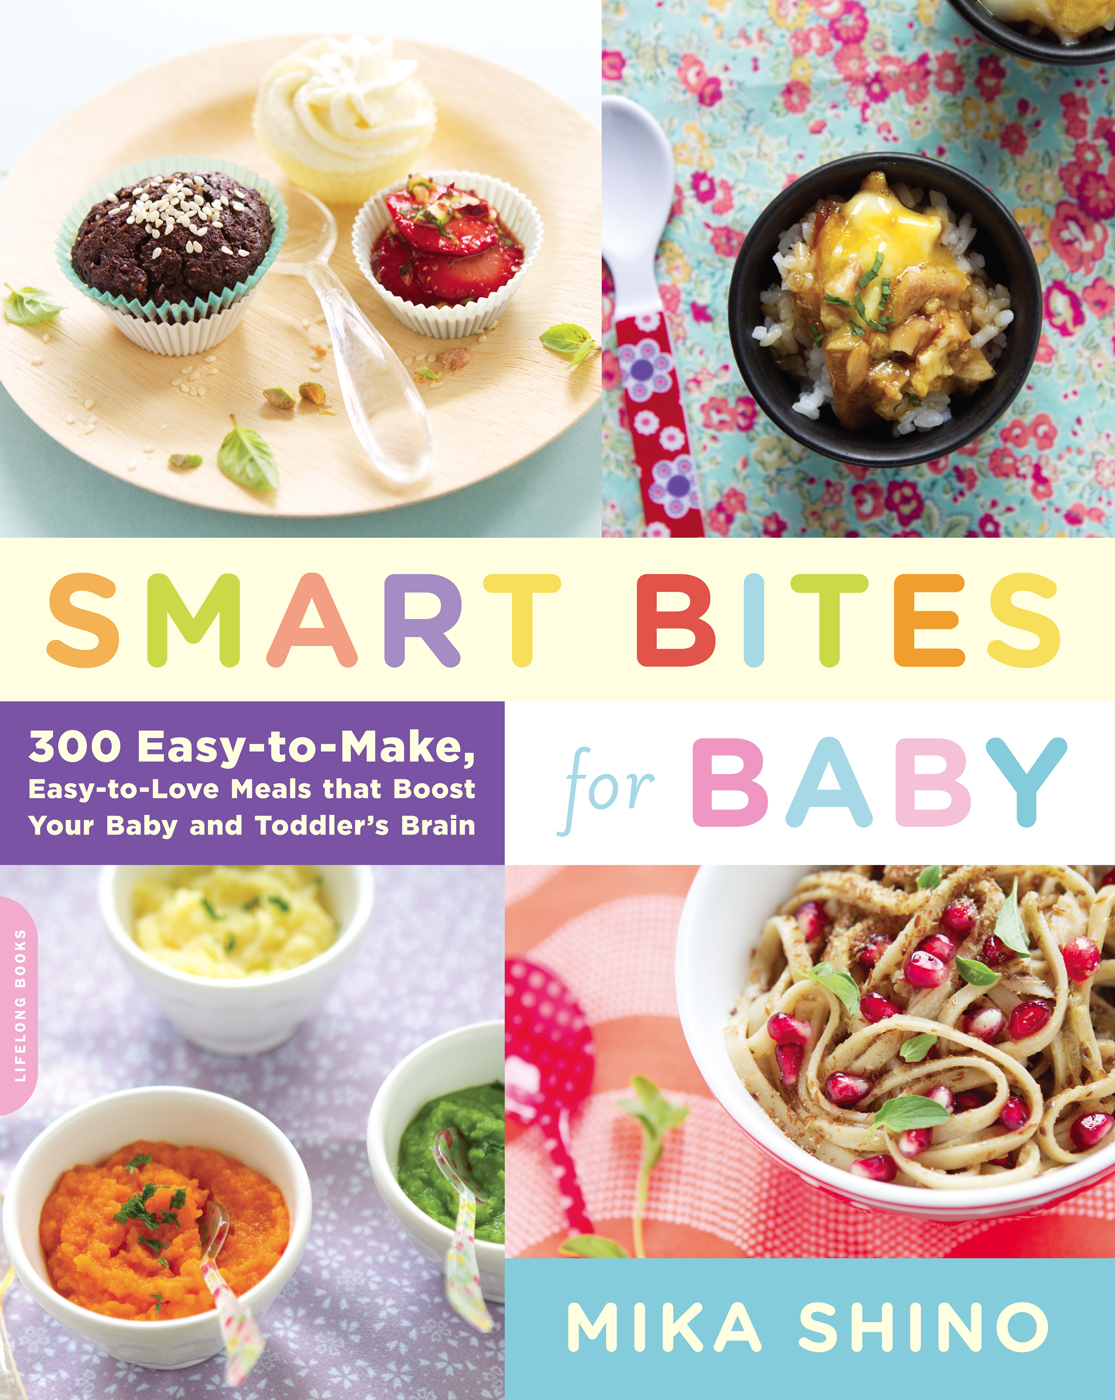 Smart Bites for Baby By: Mika Shino